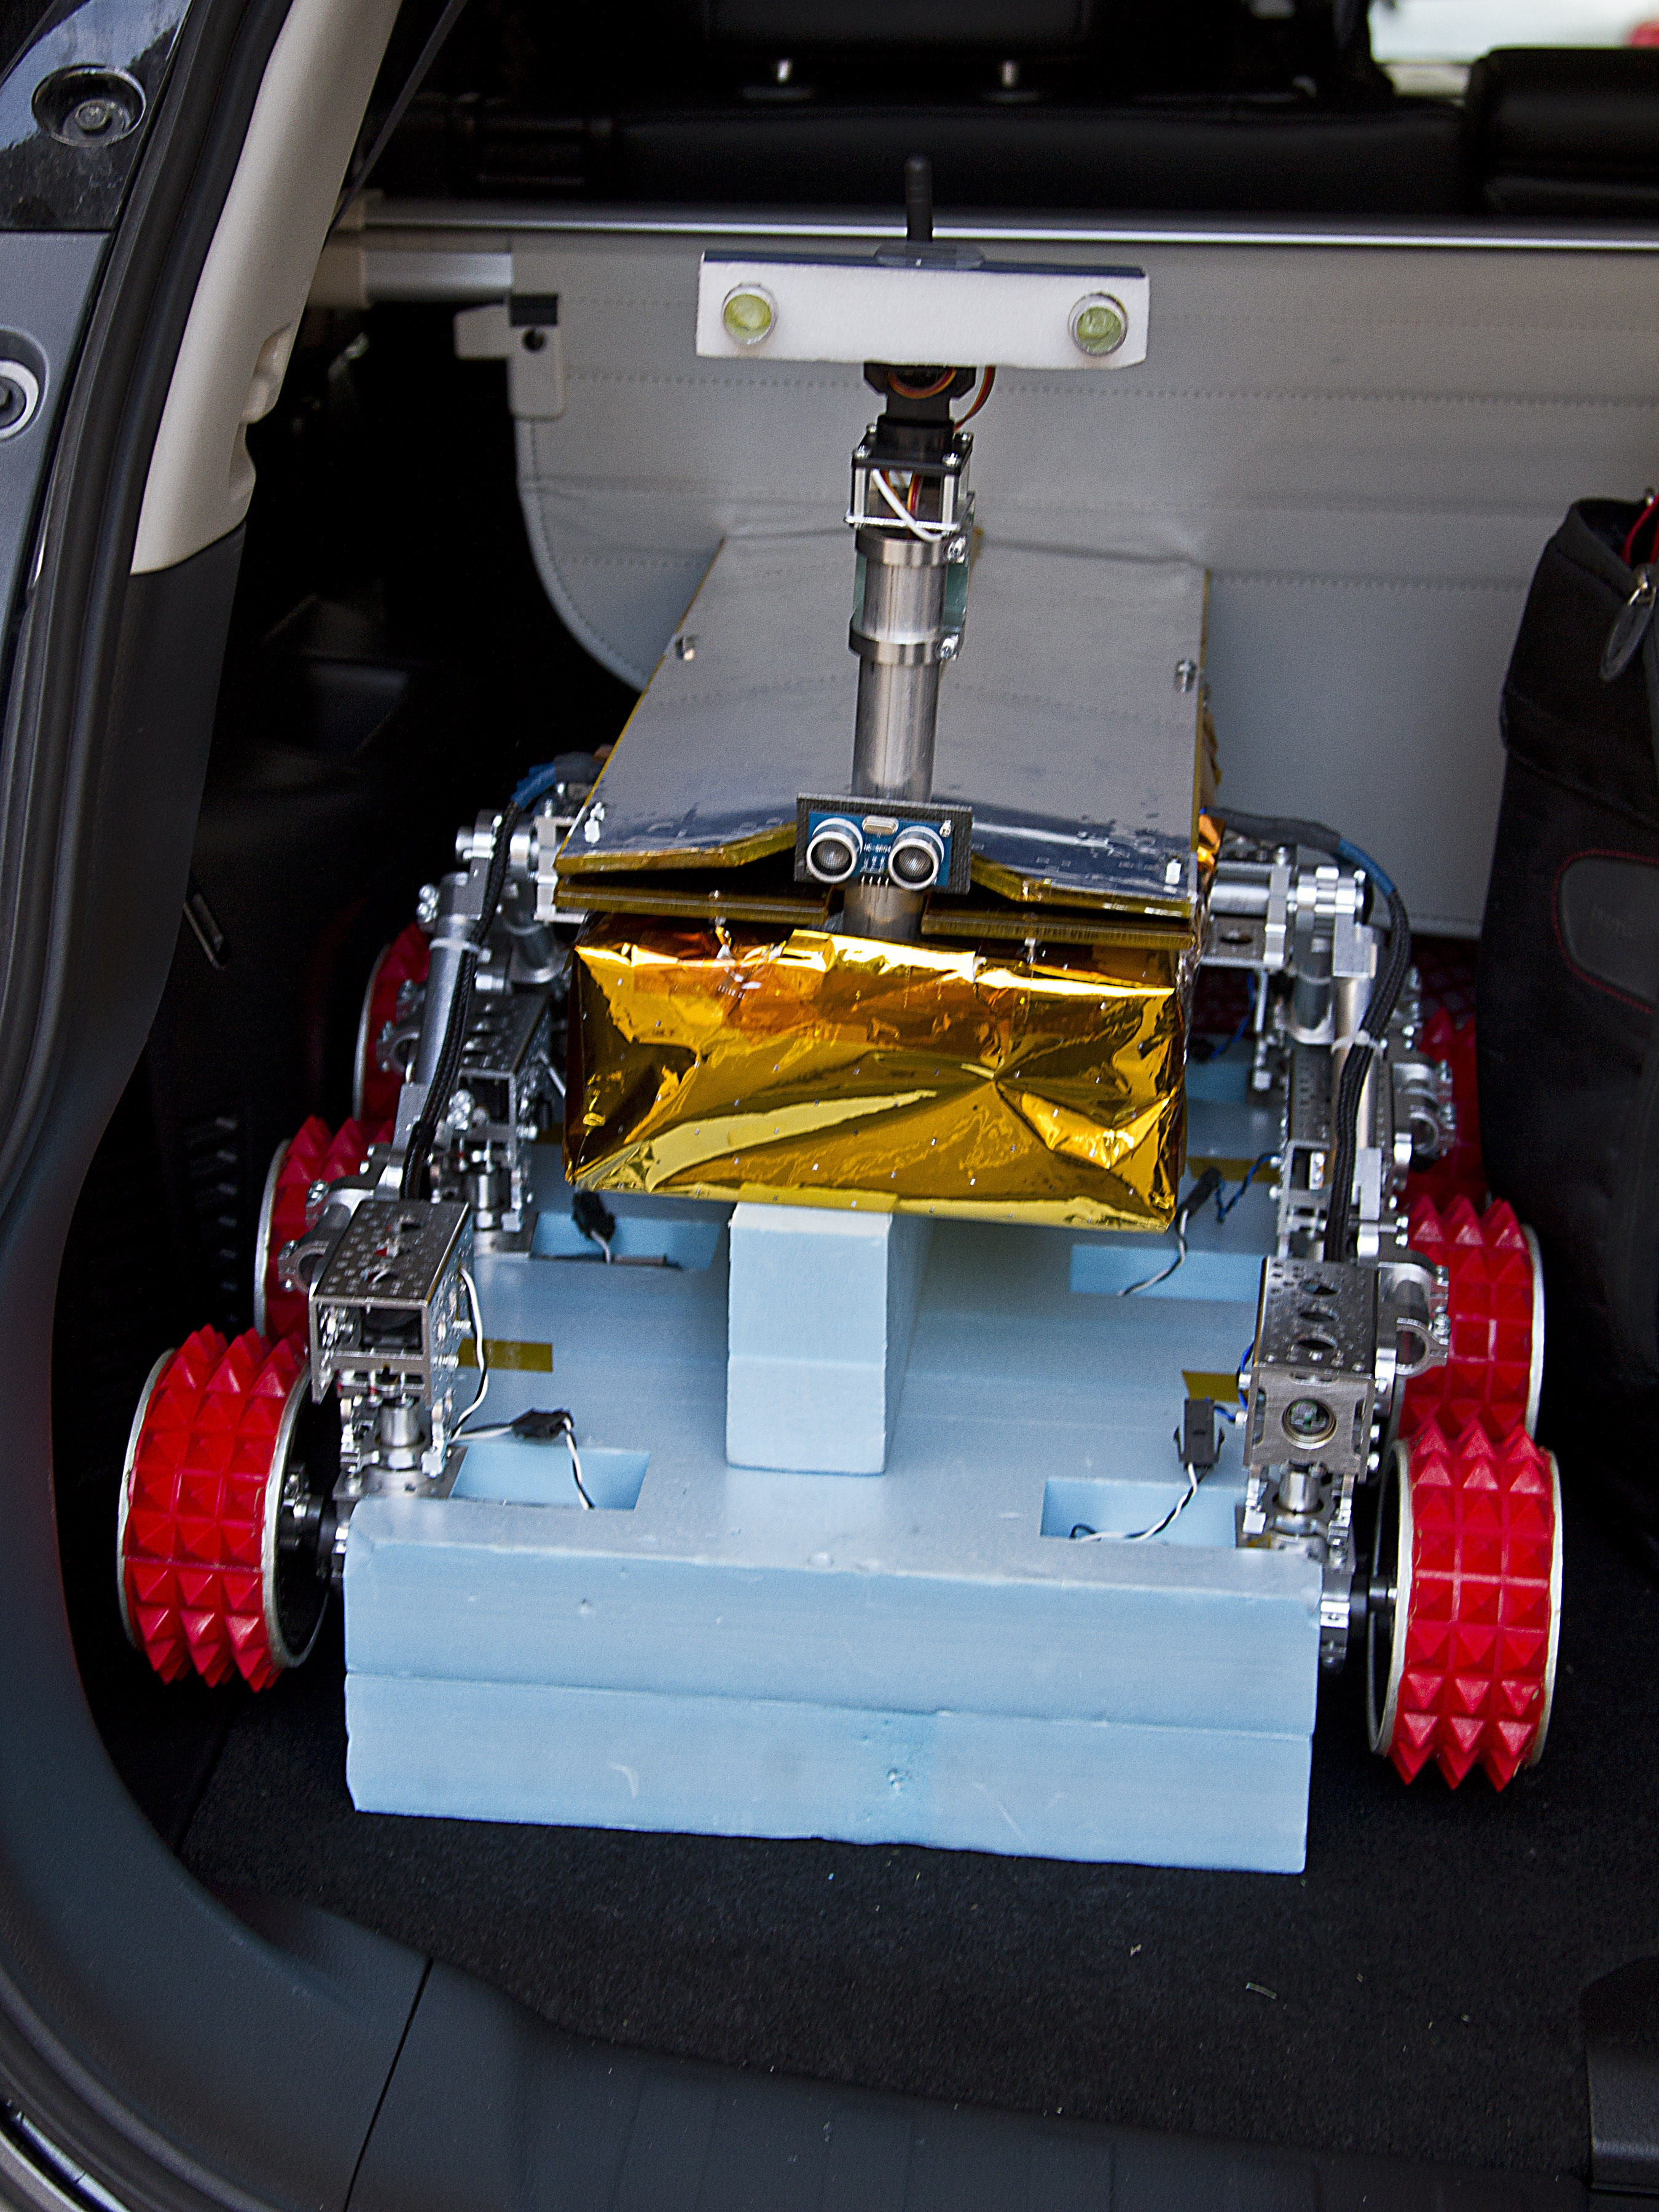 Model of the Mars Rover explorer to deployed on the planet's surface